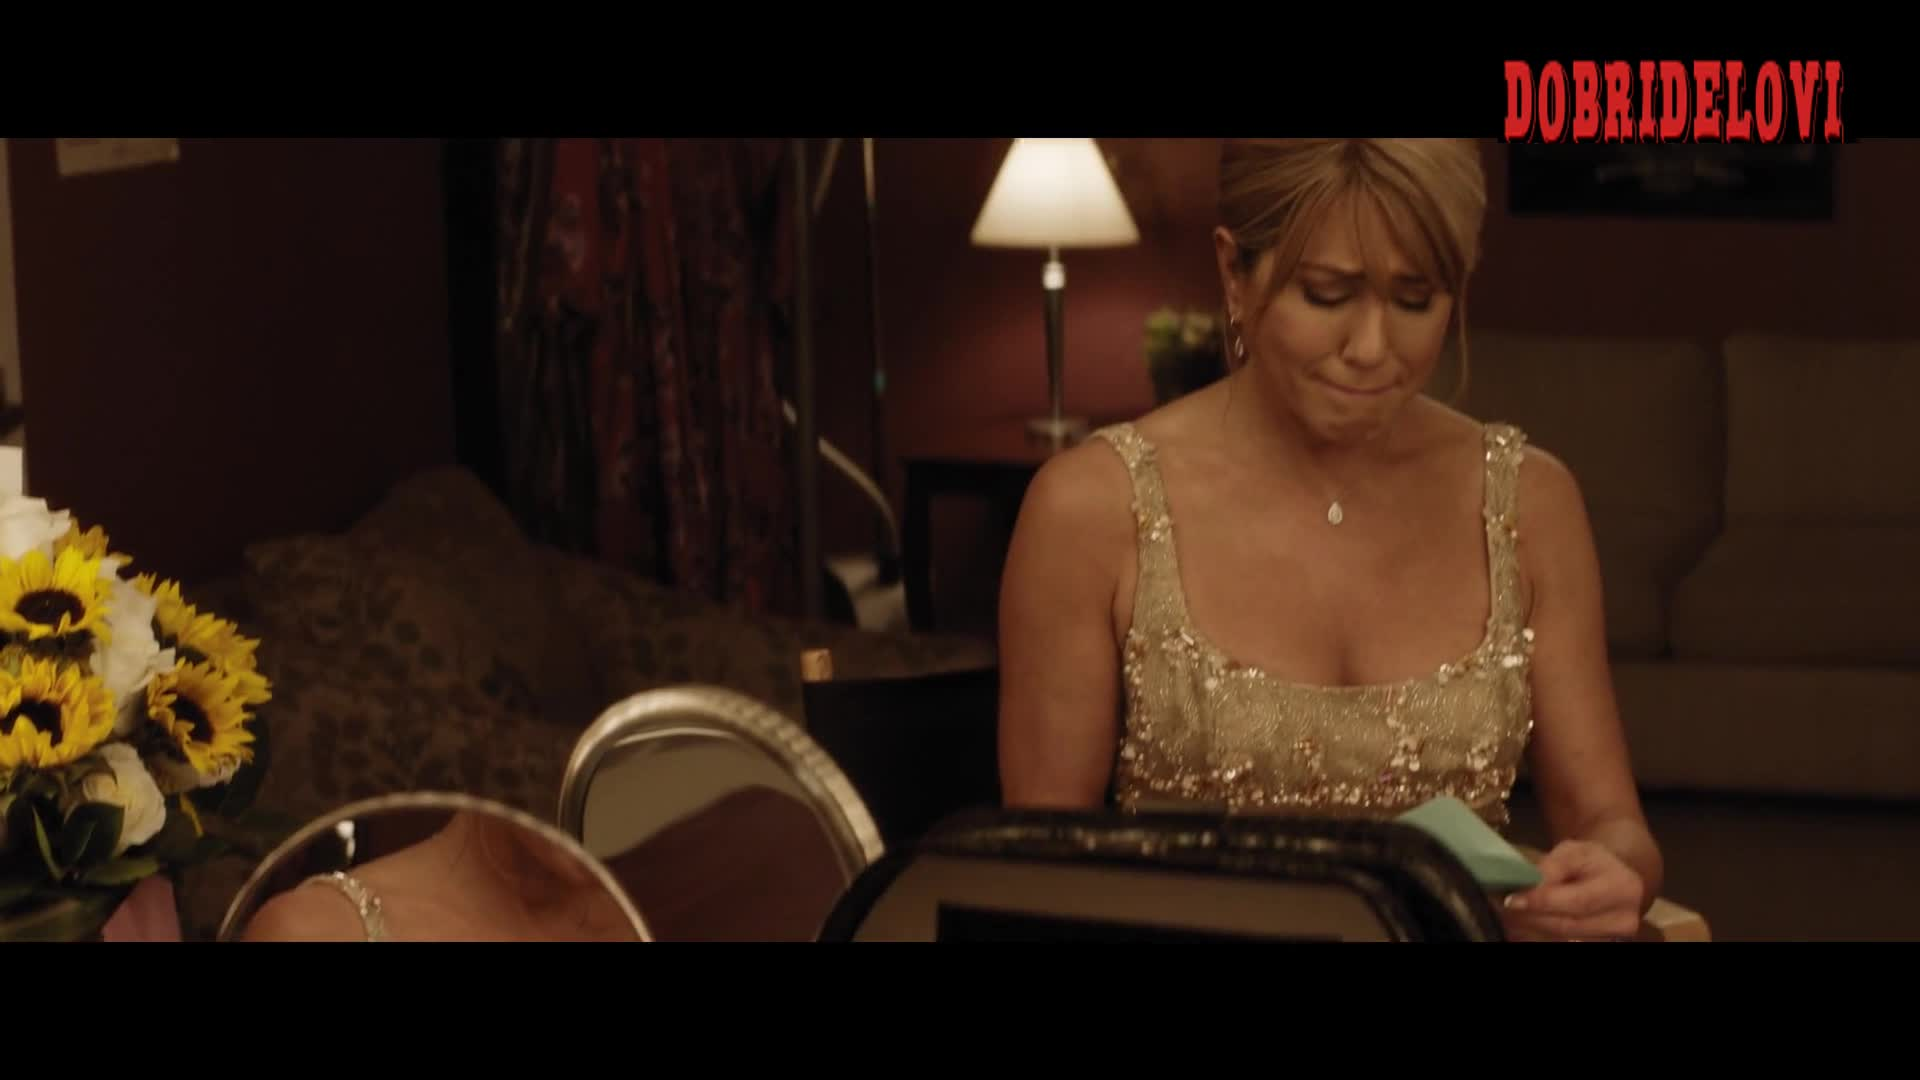 Jennifer Aniston getting dressed scene from Dumplin'